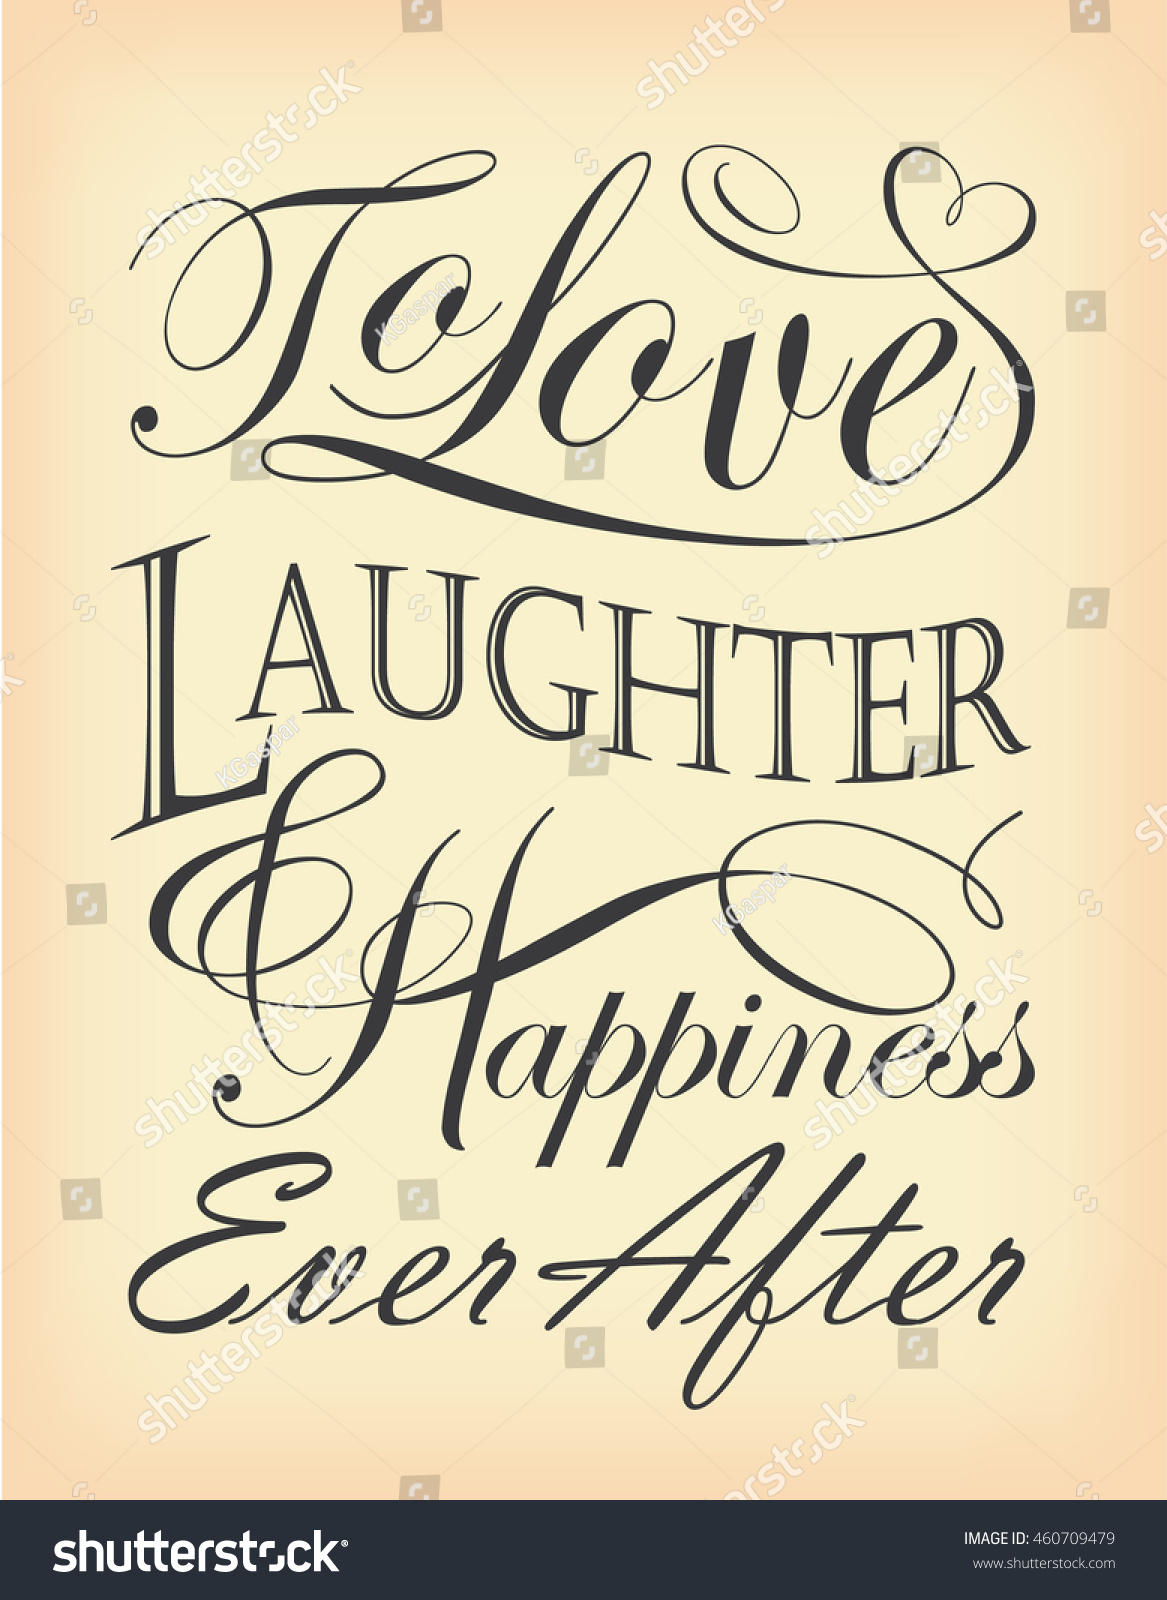 Quotes About Happiness And Laughter Love Laughter Happiness Ever After Quote Stock Vector 460709479